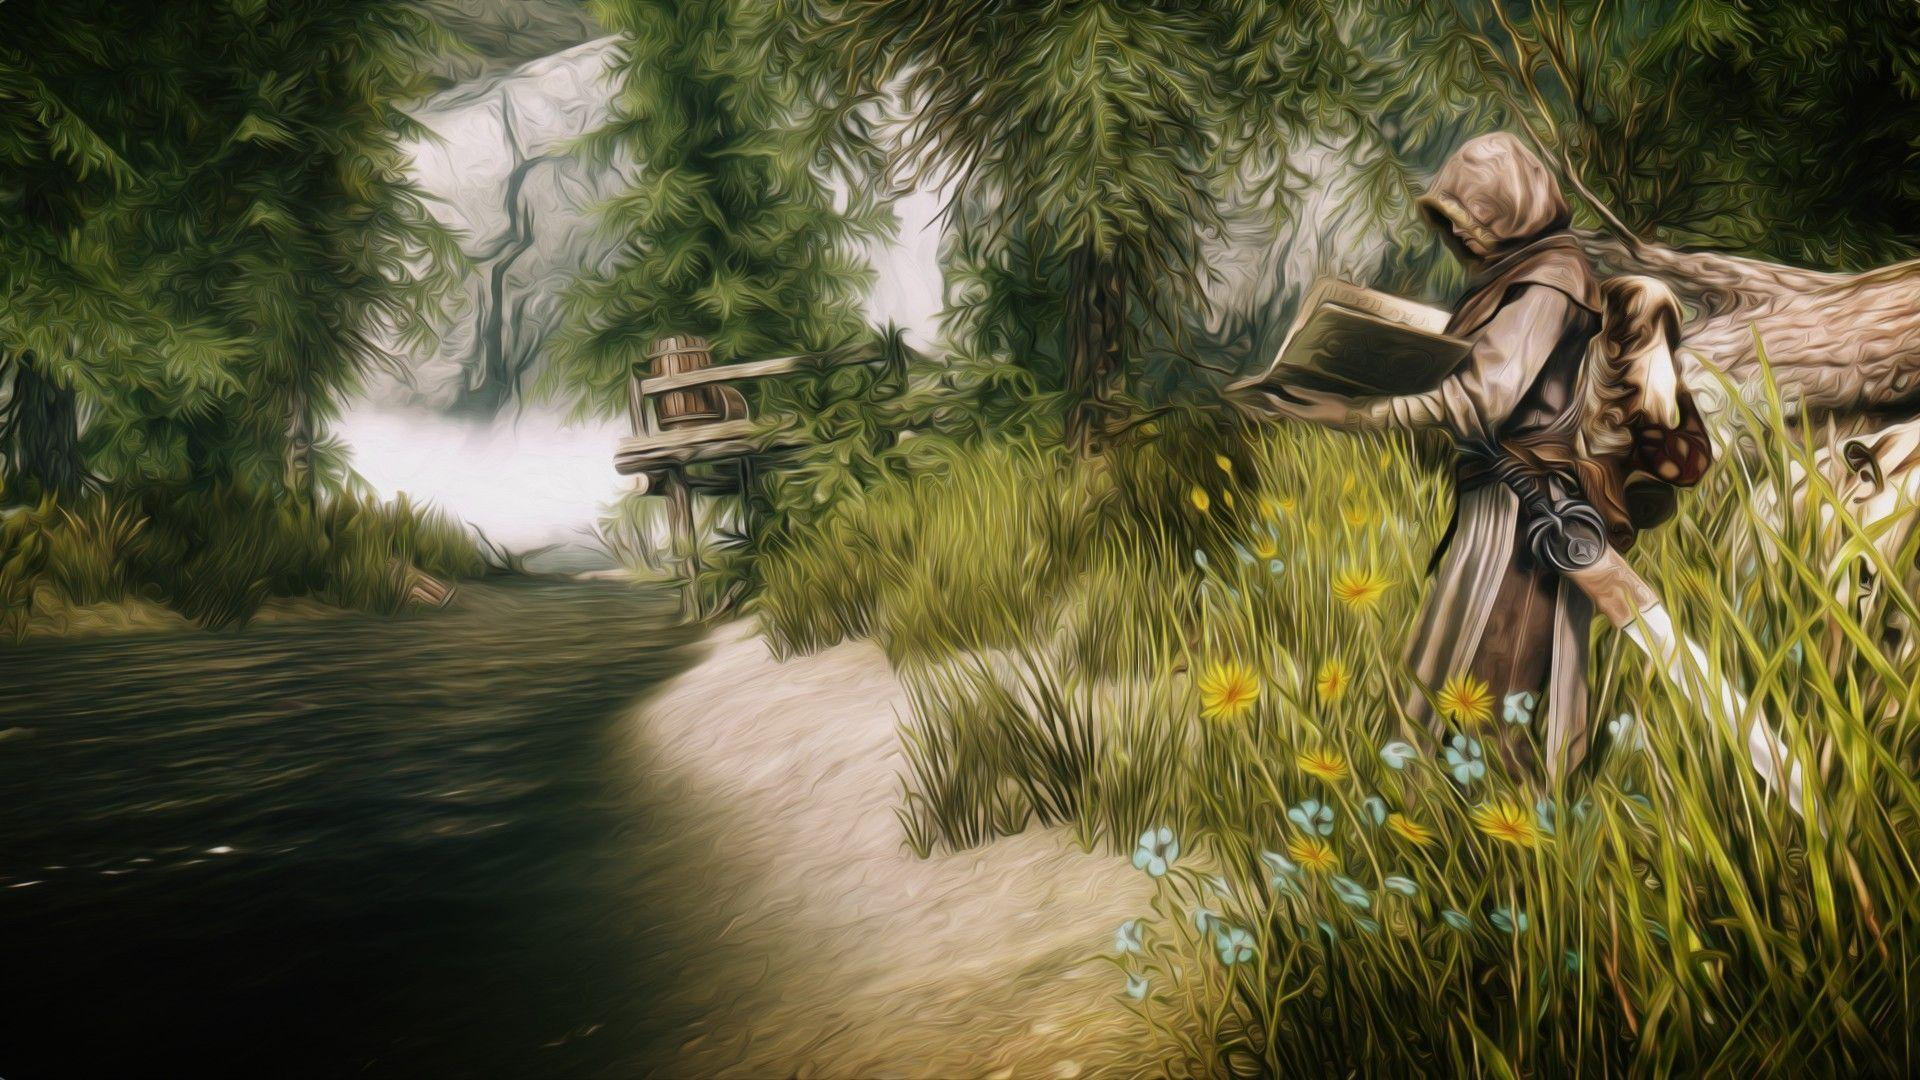 skyrim hd wallpapers 1366x768 - photo #31